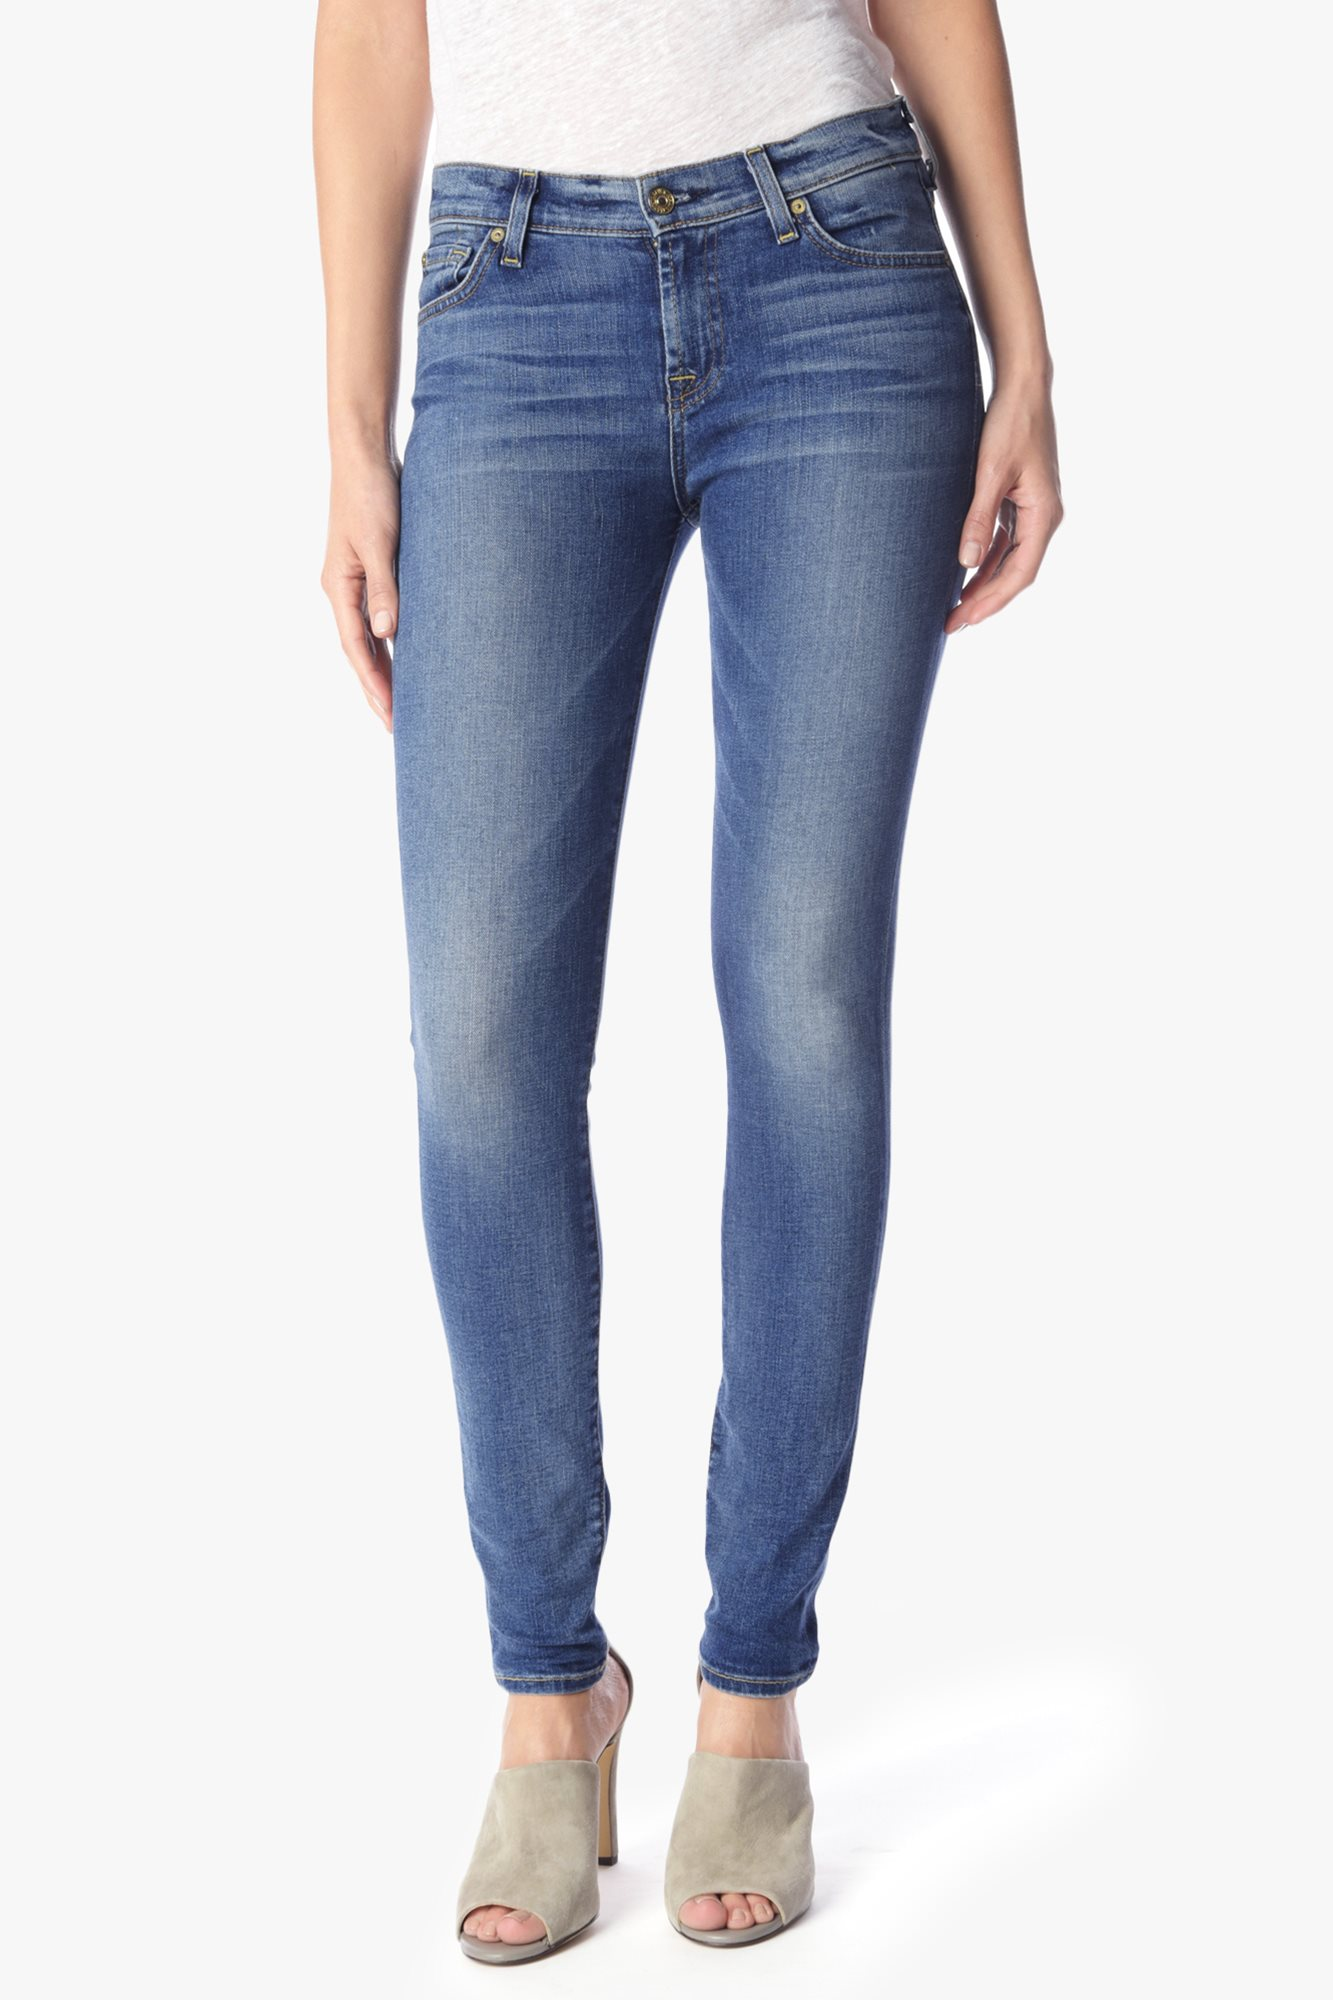 Womens Skinny Jeans 7 For All Mankind tOrqrd2T